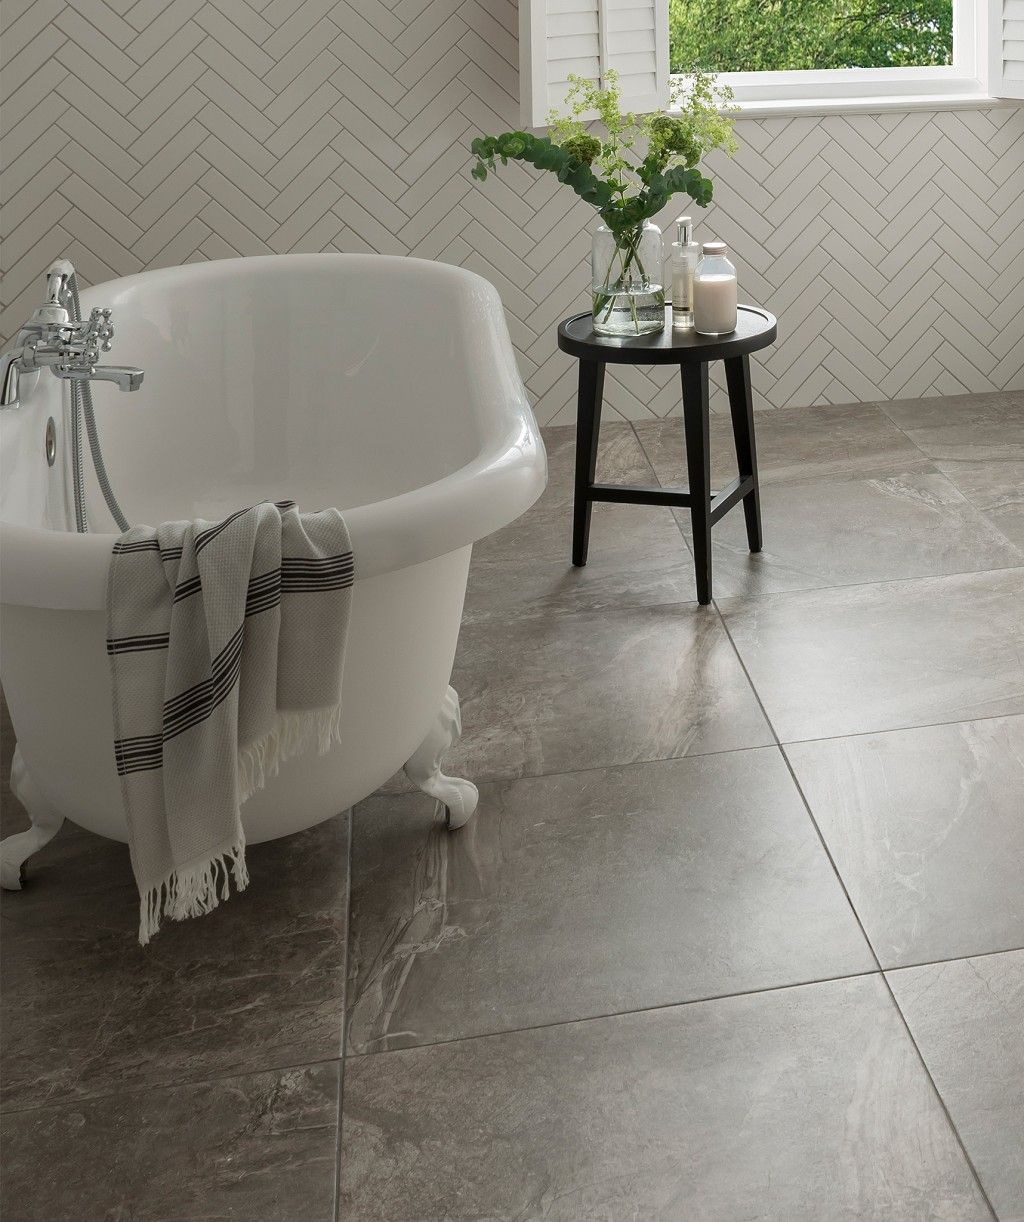 Elton Is Exclusive To Topps Tiles And Inspired By The Courtyards